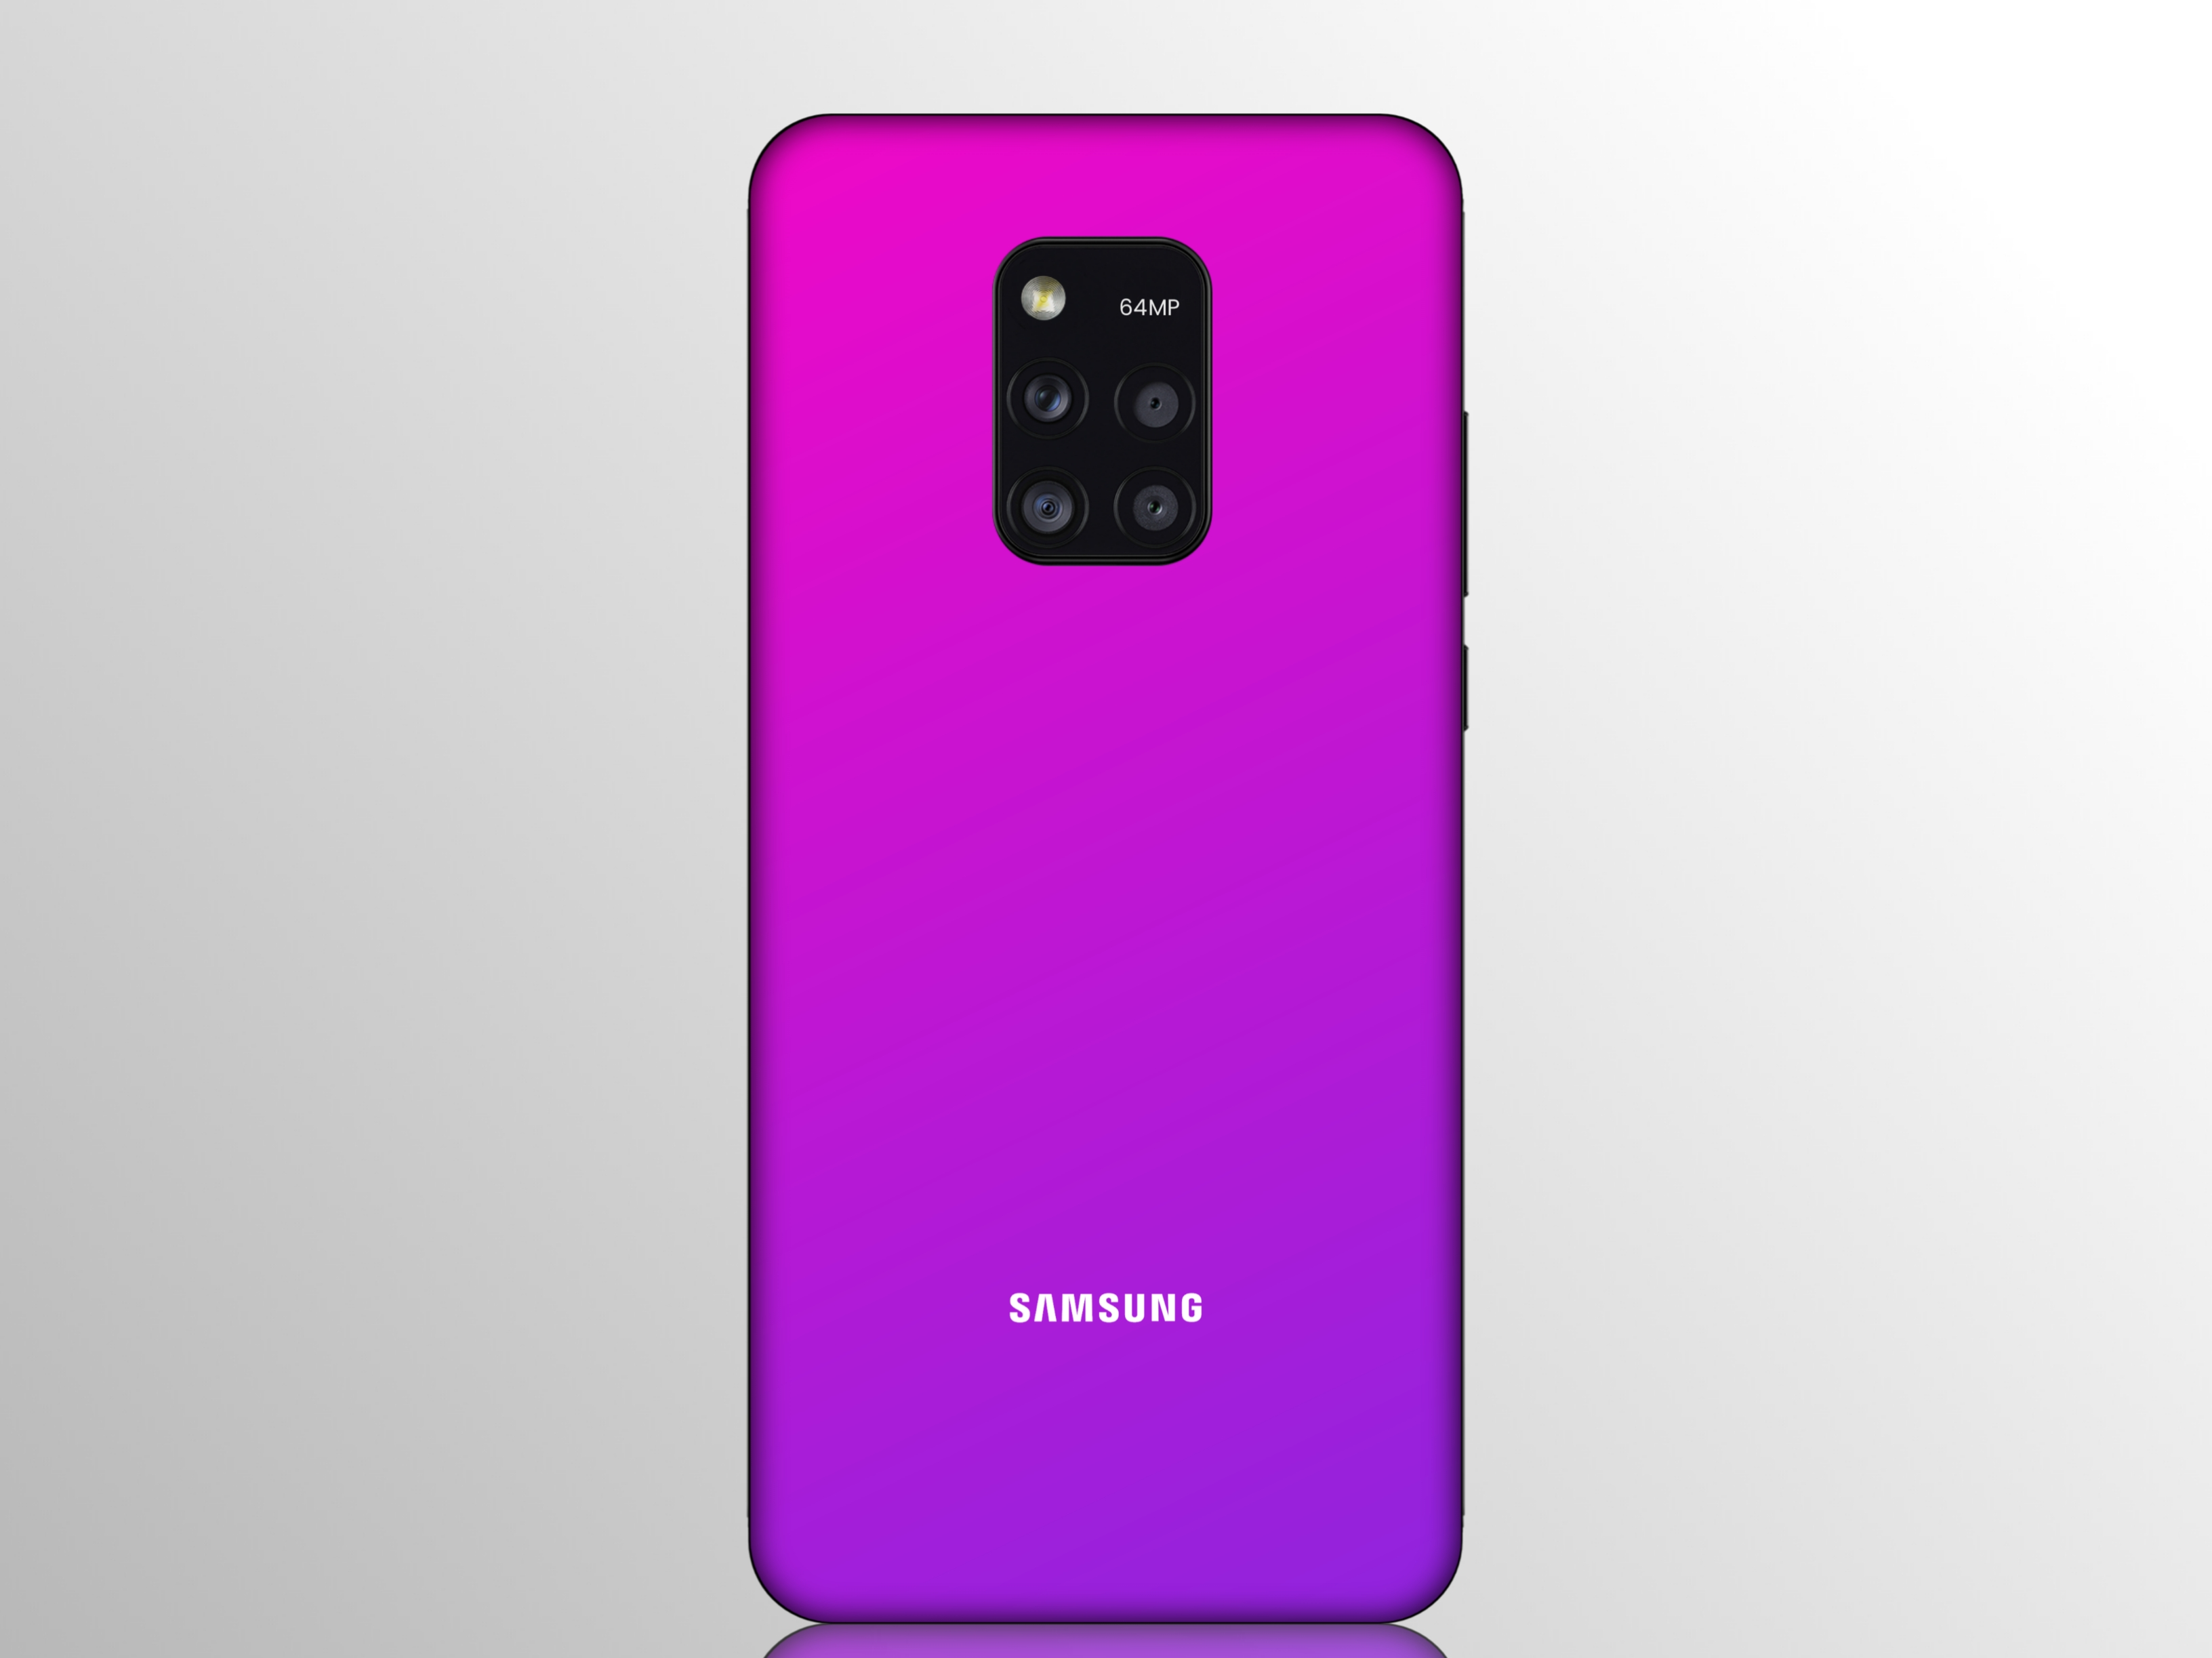 Samsung Galaxy M31s - A new concept design with detailed Specifications